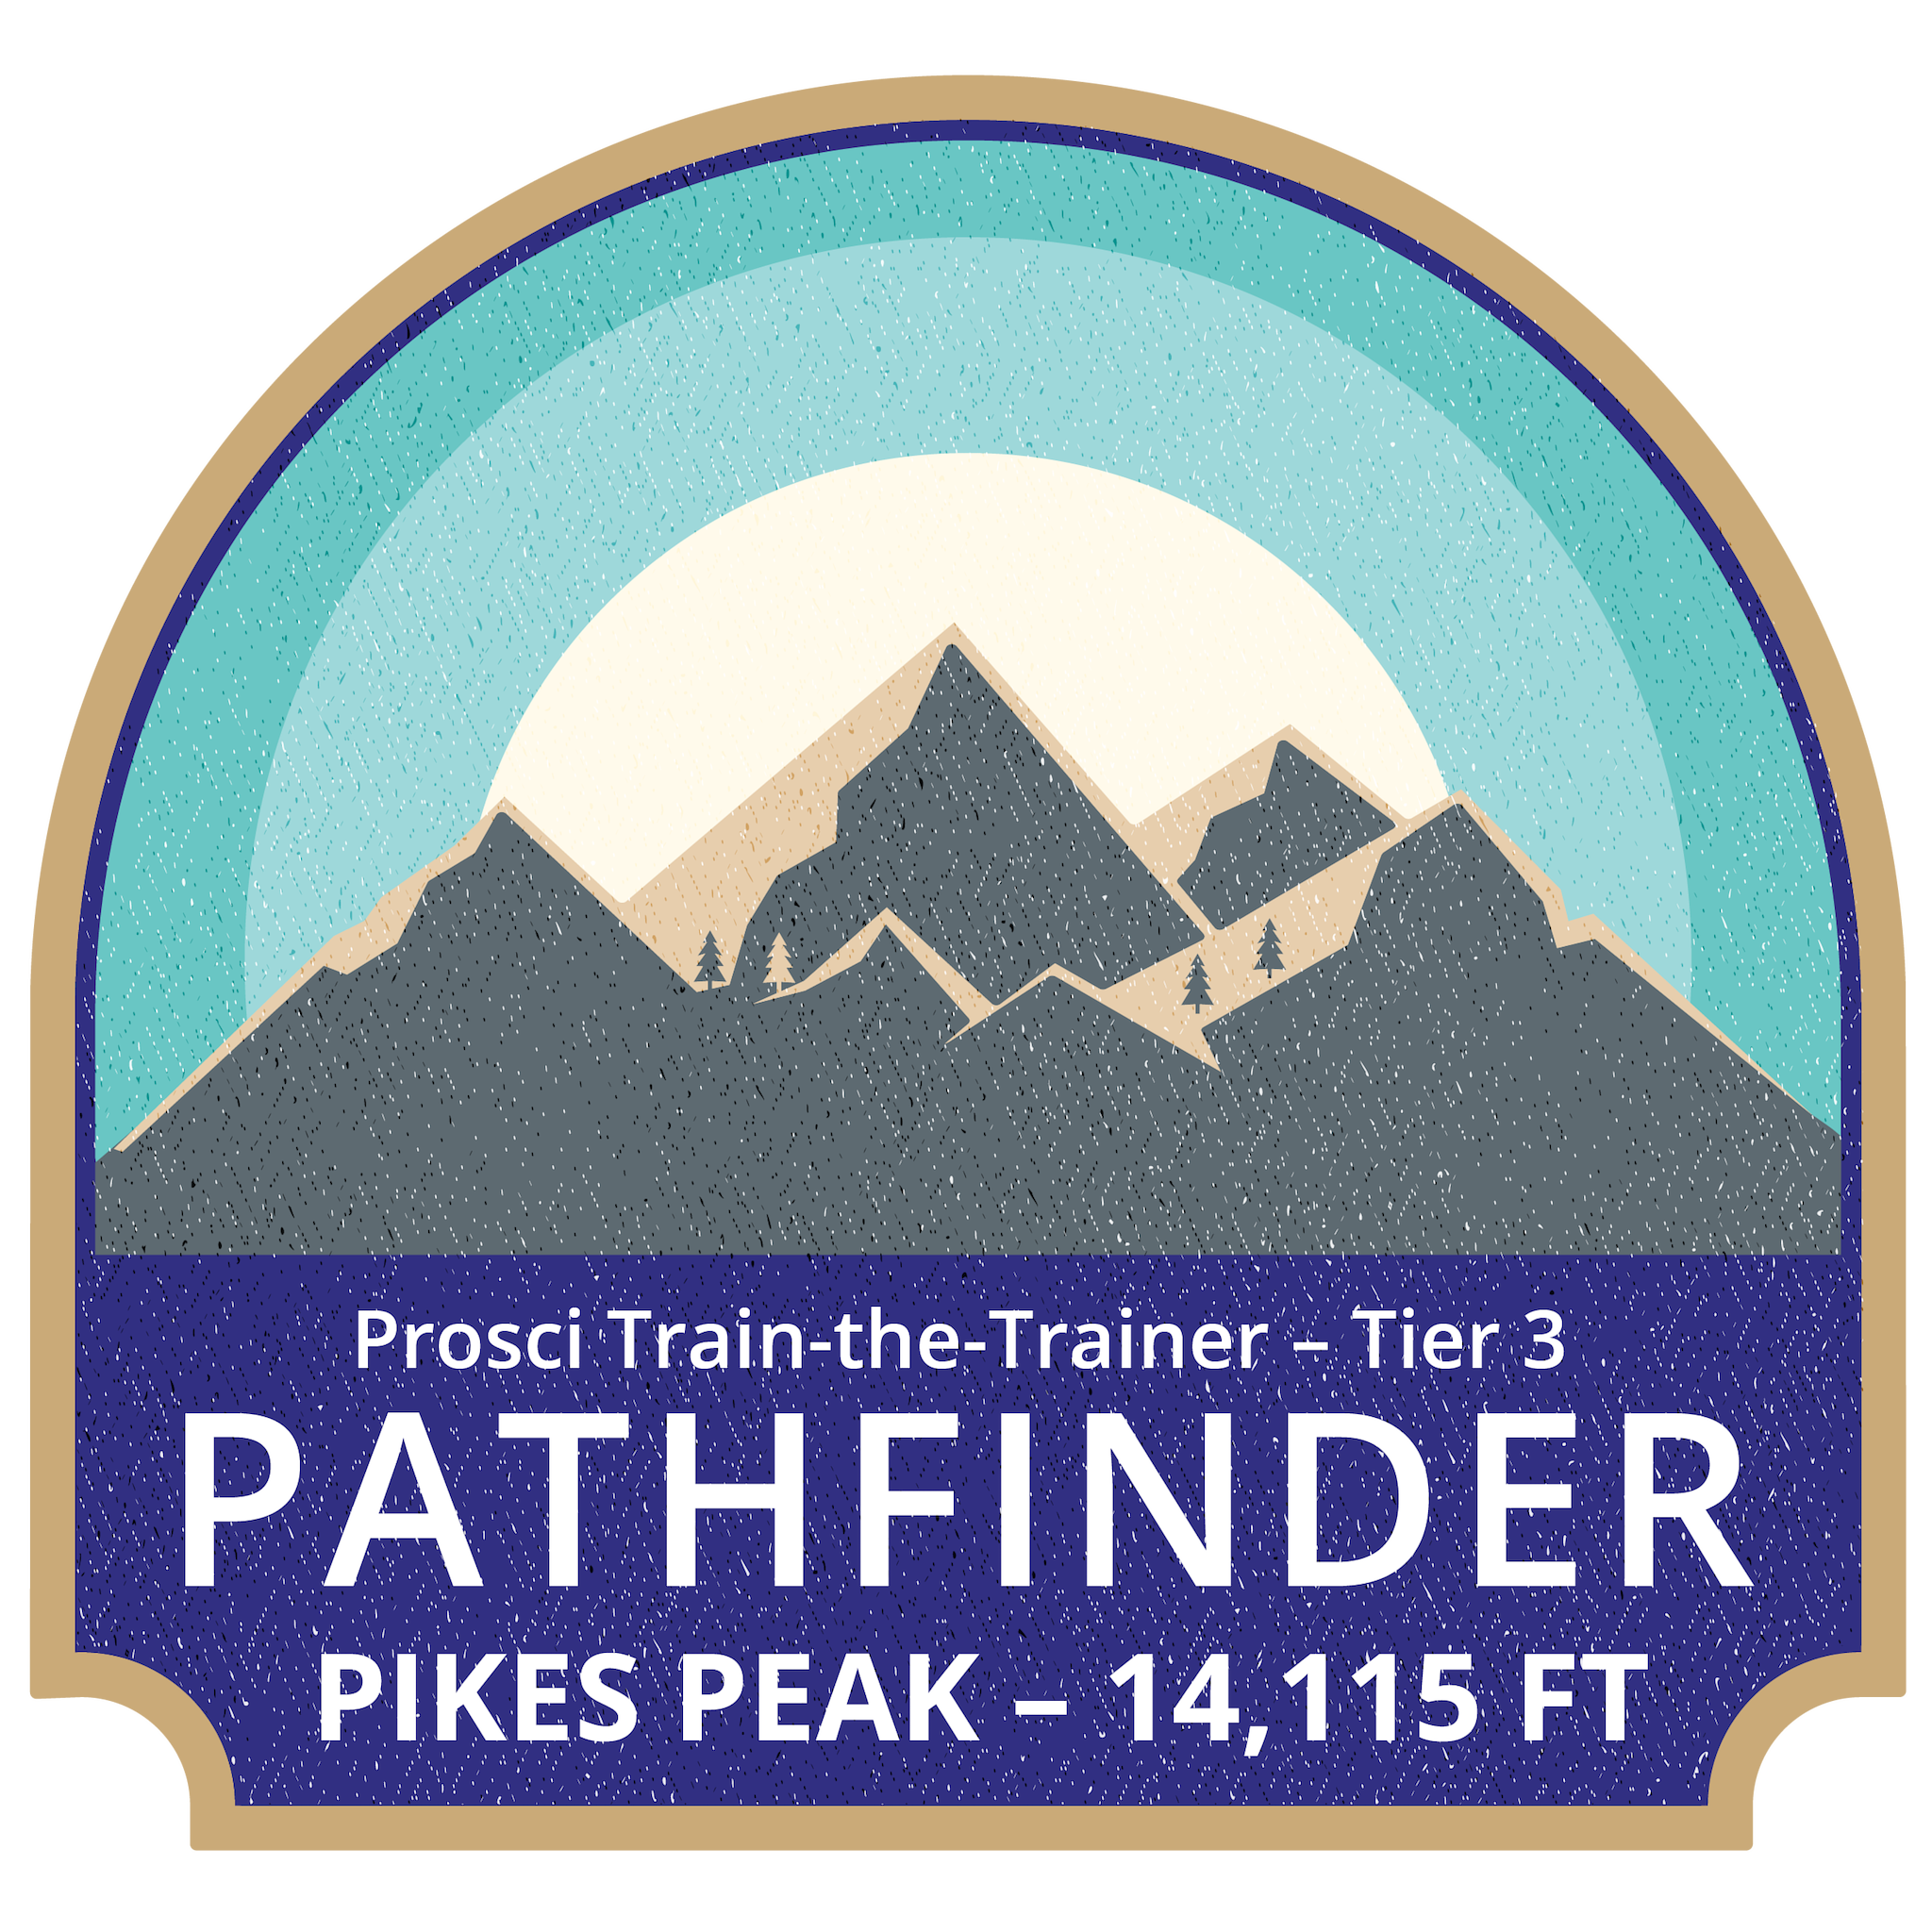 Prosci® Train-the-Trainer Rewards Tier 3